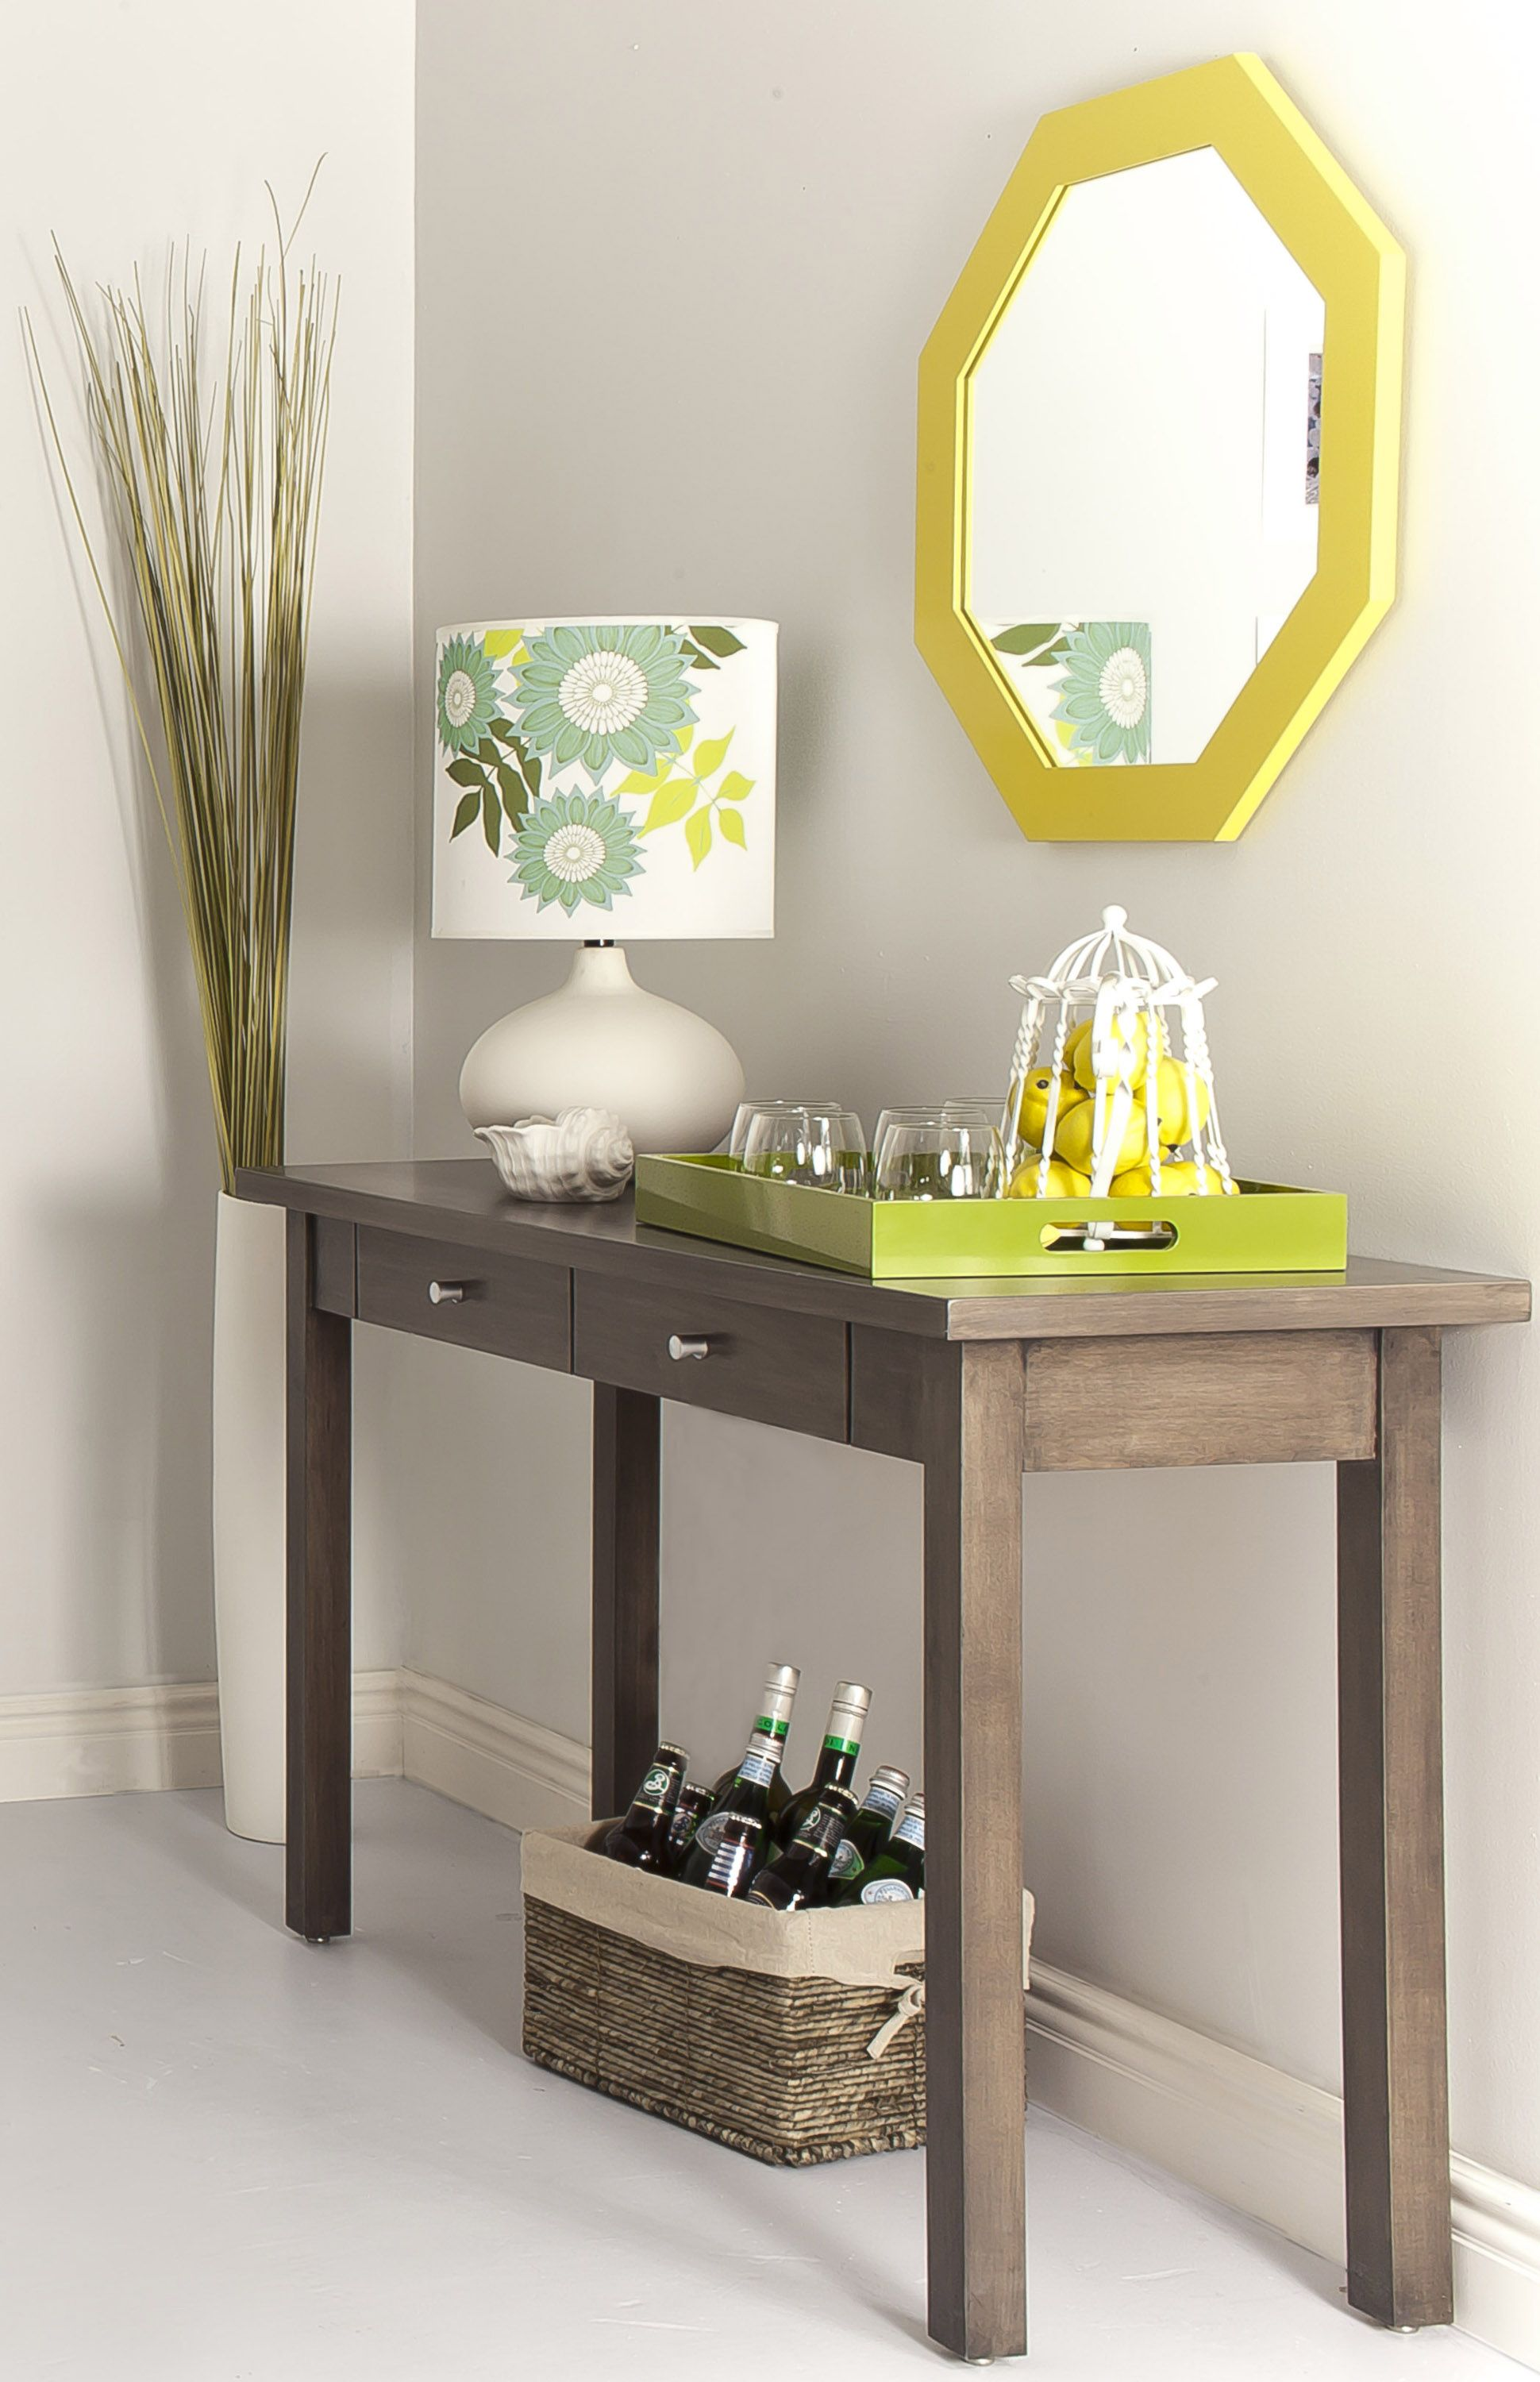 Rustic hallway furniture  Image of Entryway Console Table with Mirror  Home Inspiration